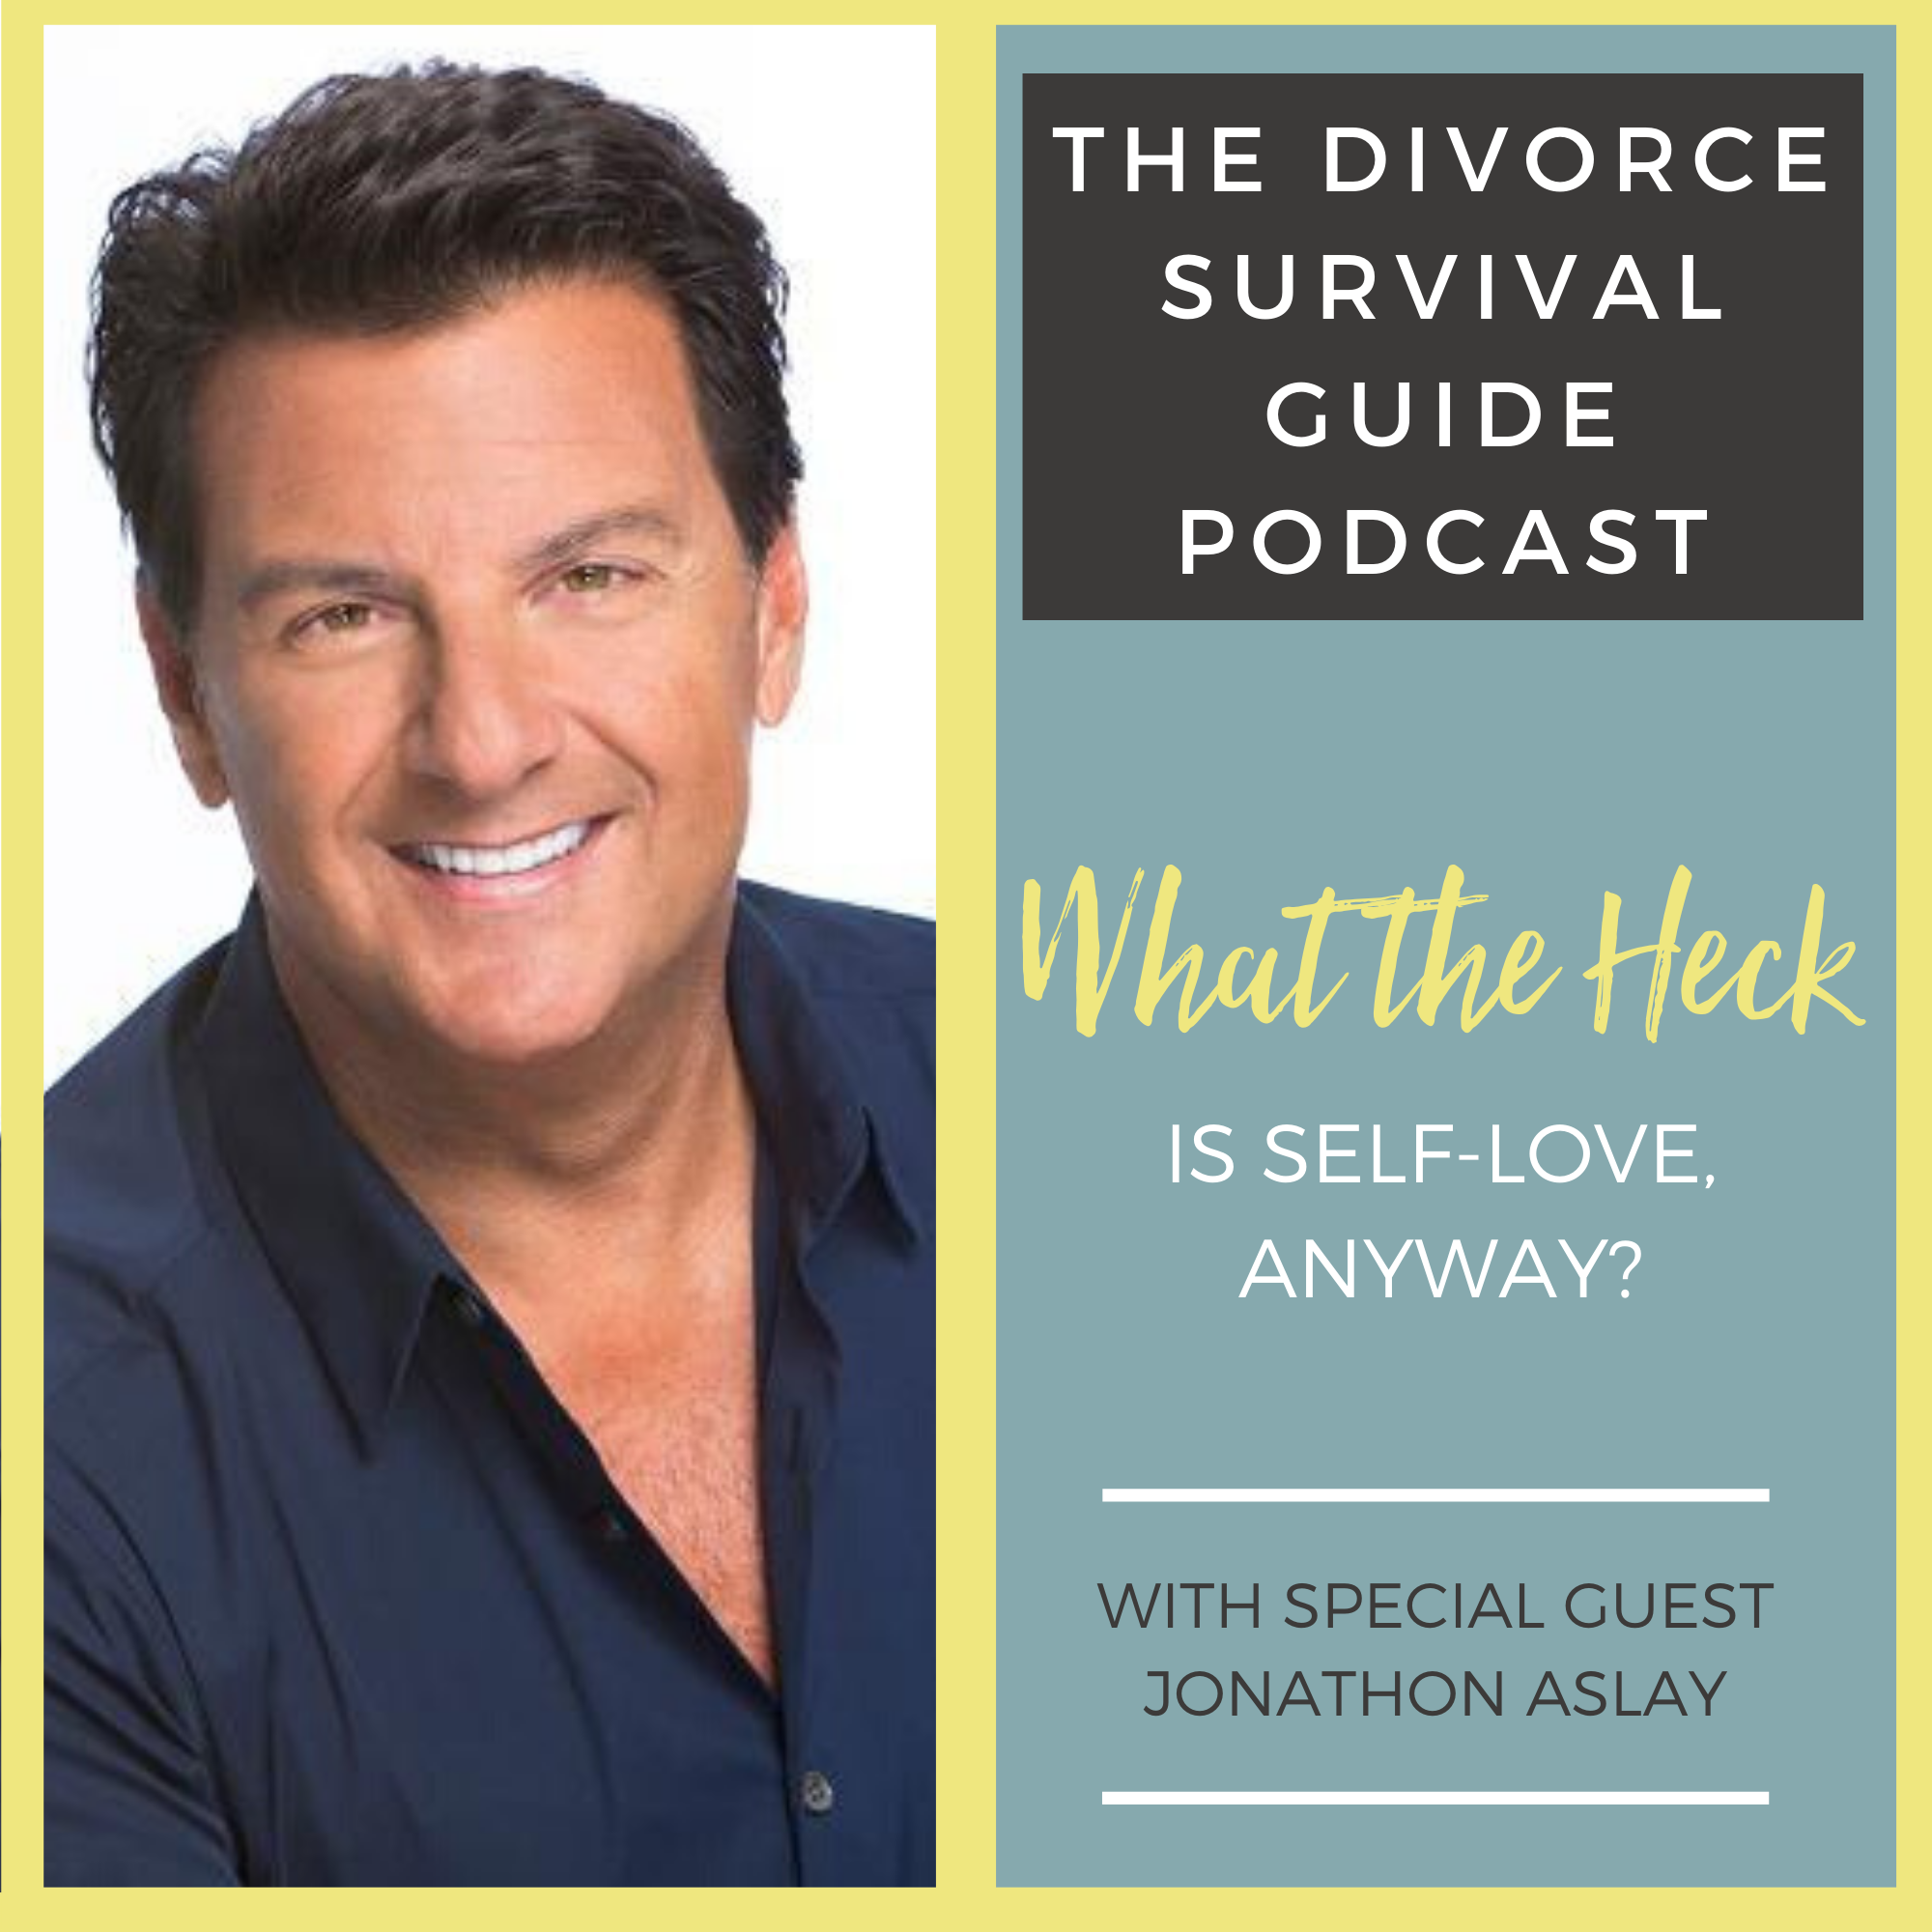 The Divorce Survival Guide Podcast - What the Heck is Self-Love Anyway? with Jonathon Aslay